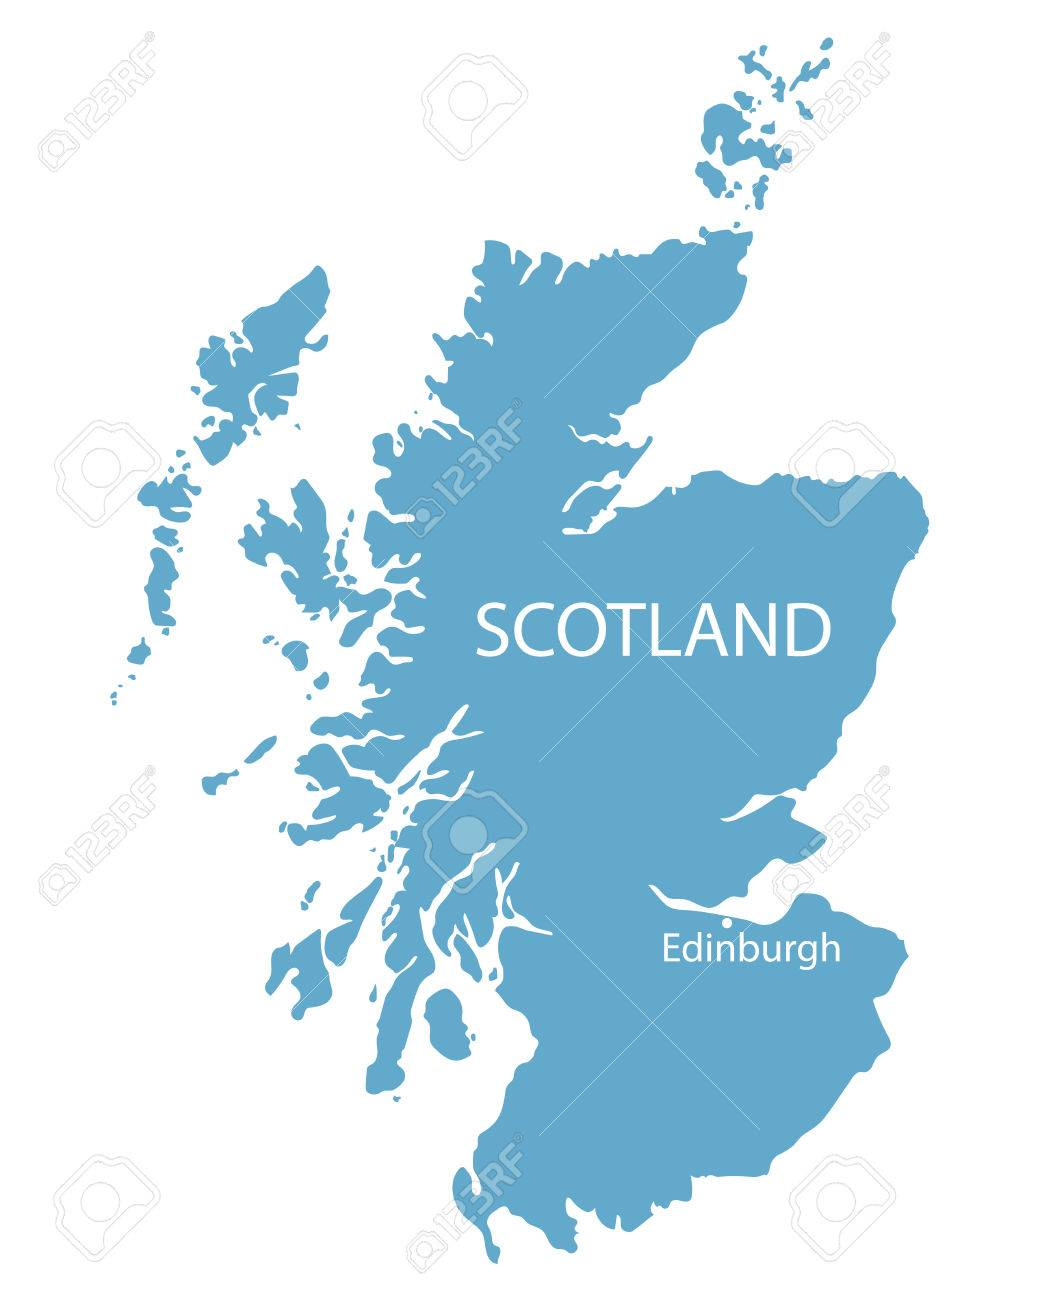 Map Of Edinburgh Scotland Blue Map Of Scotland With Indication Of Edinburgh Royalty Free  Map Of Edinburgh Scotland